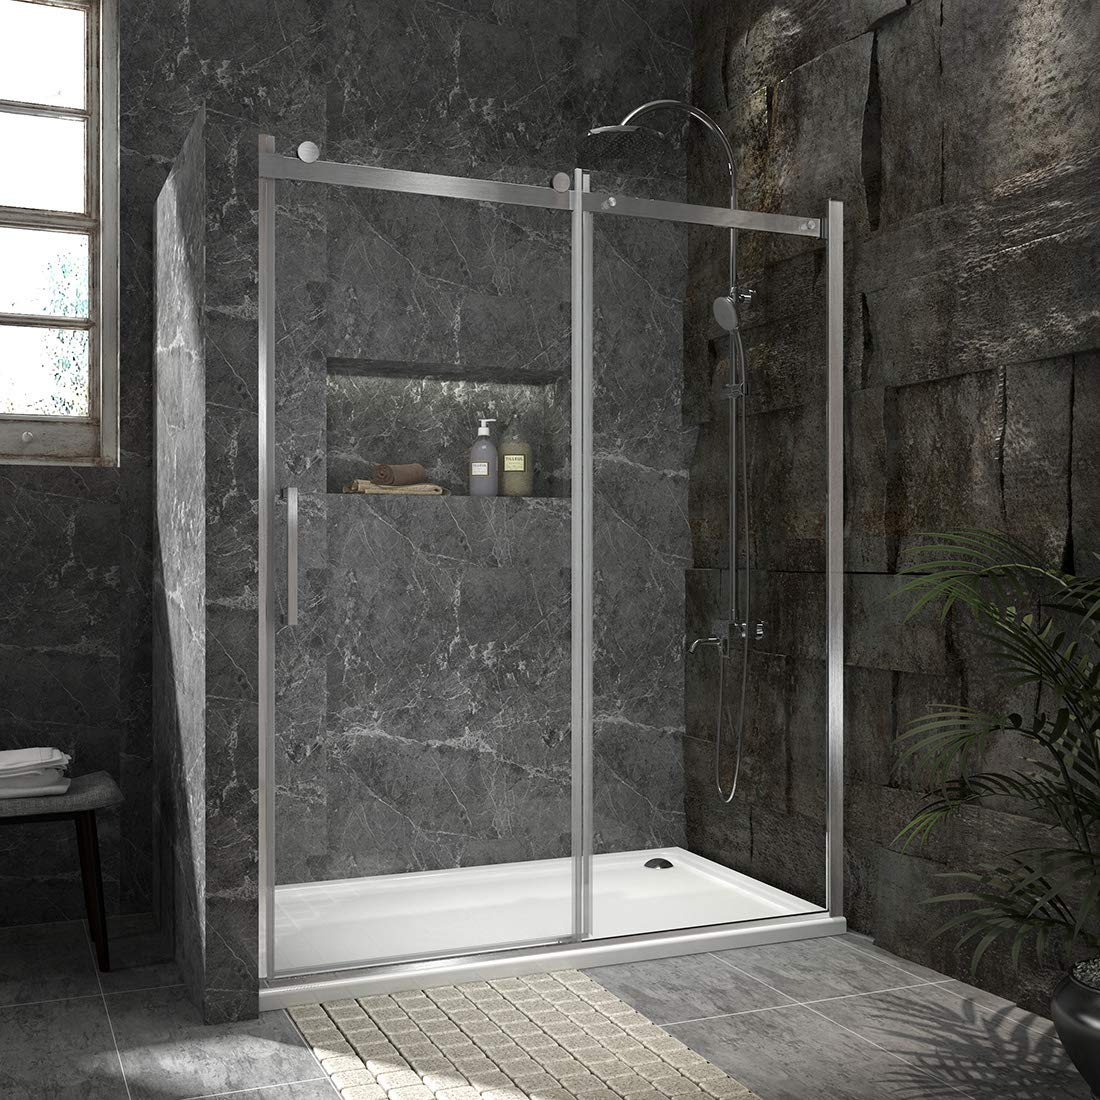 Duschdeluxe 60 x72 Frameless Sliding Shower Door 1 3 Clear Tempered Glass Shower Enclosure Fixed Sliding Door – Brushed Nickel Finish